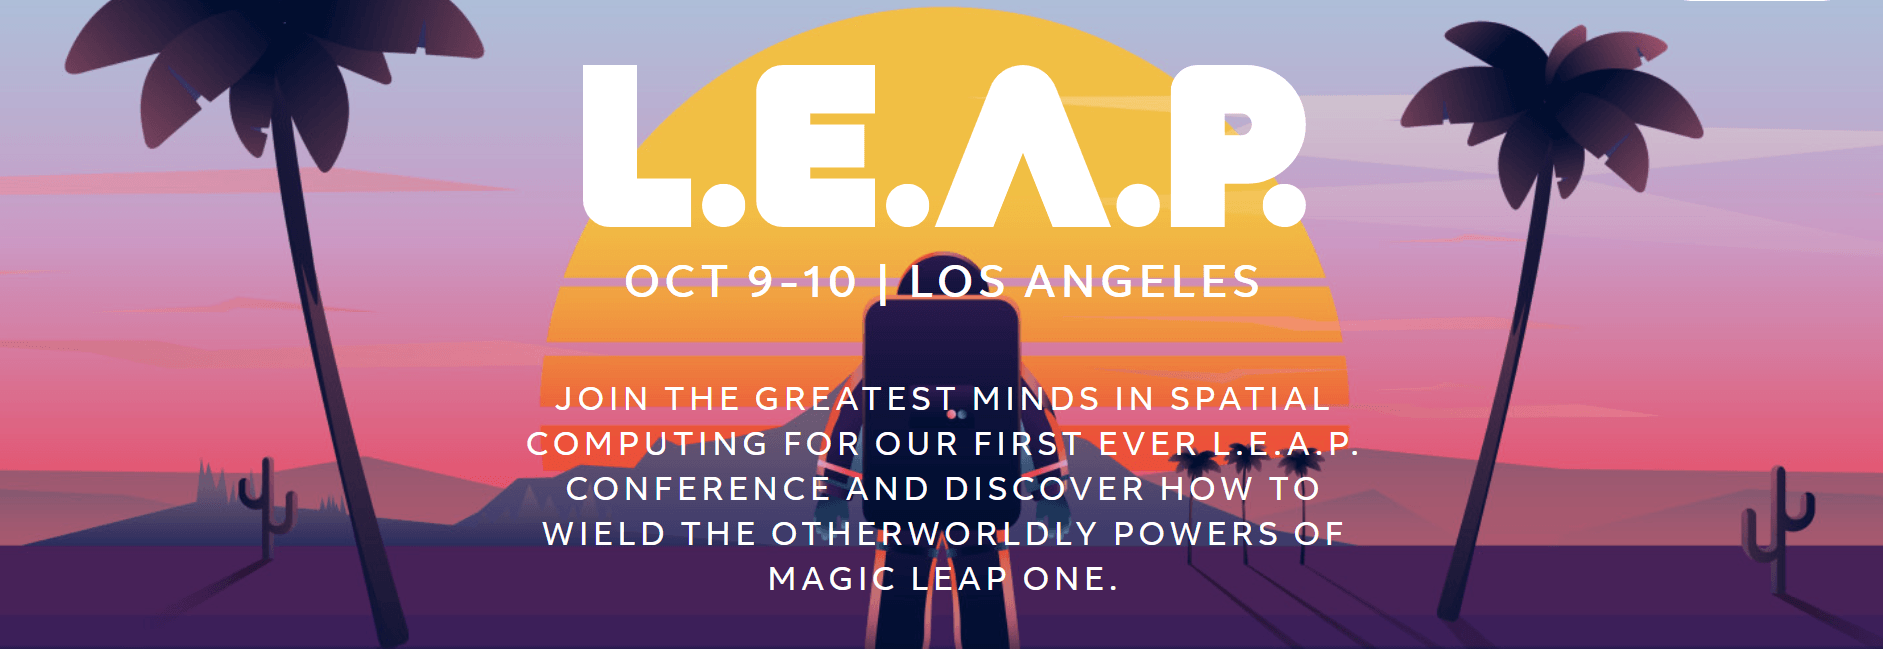 L.E.A.P así será la primera conferencia de Magic Leap